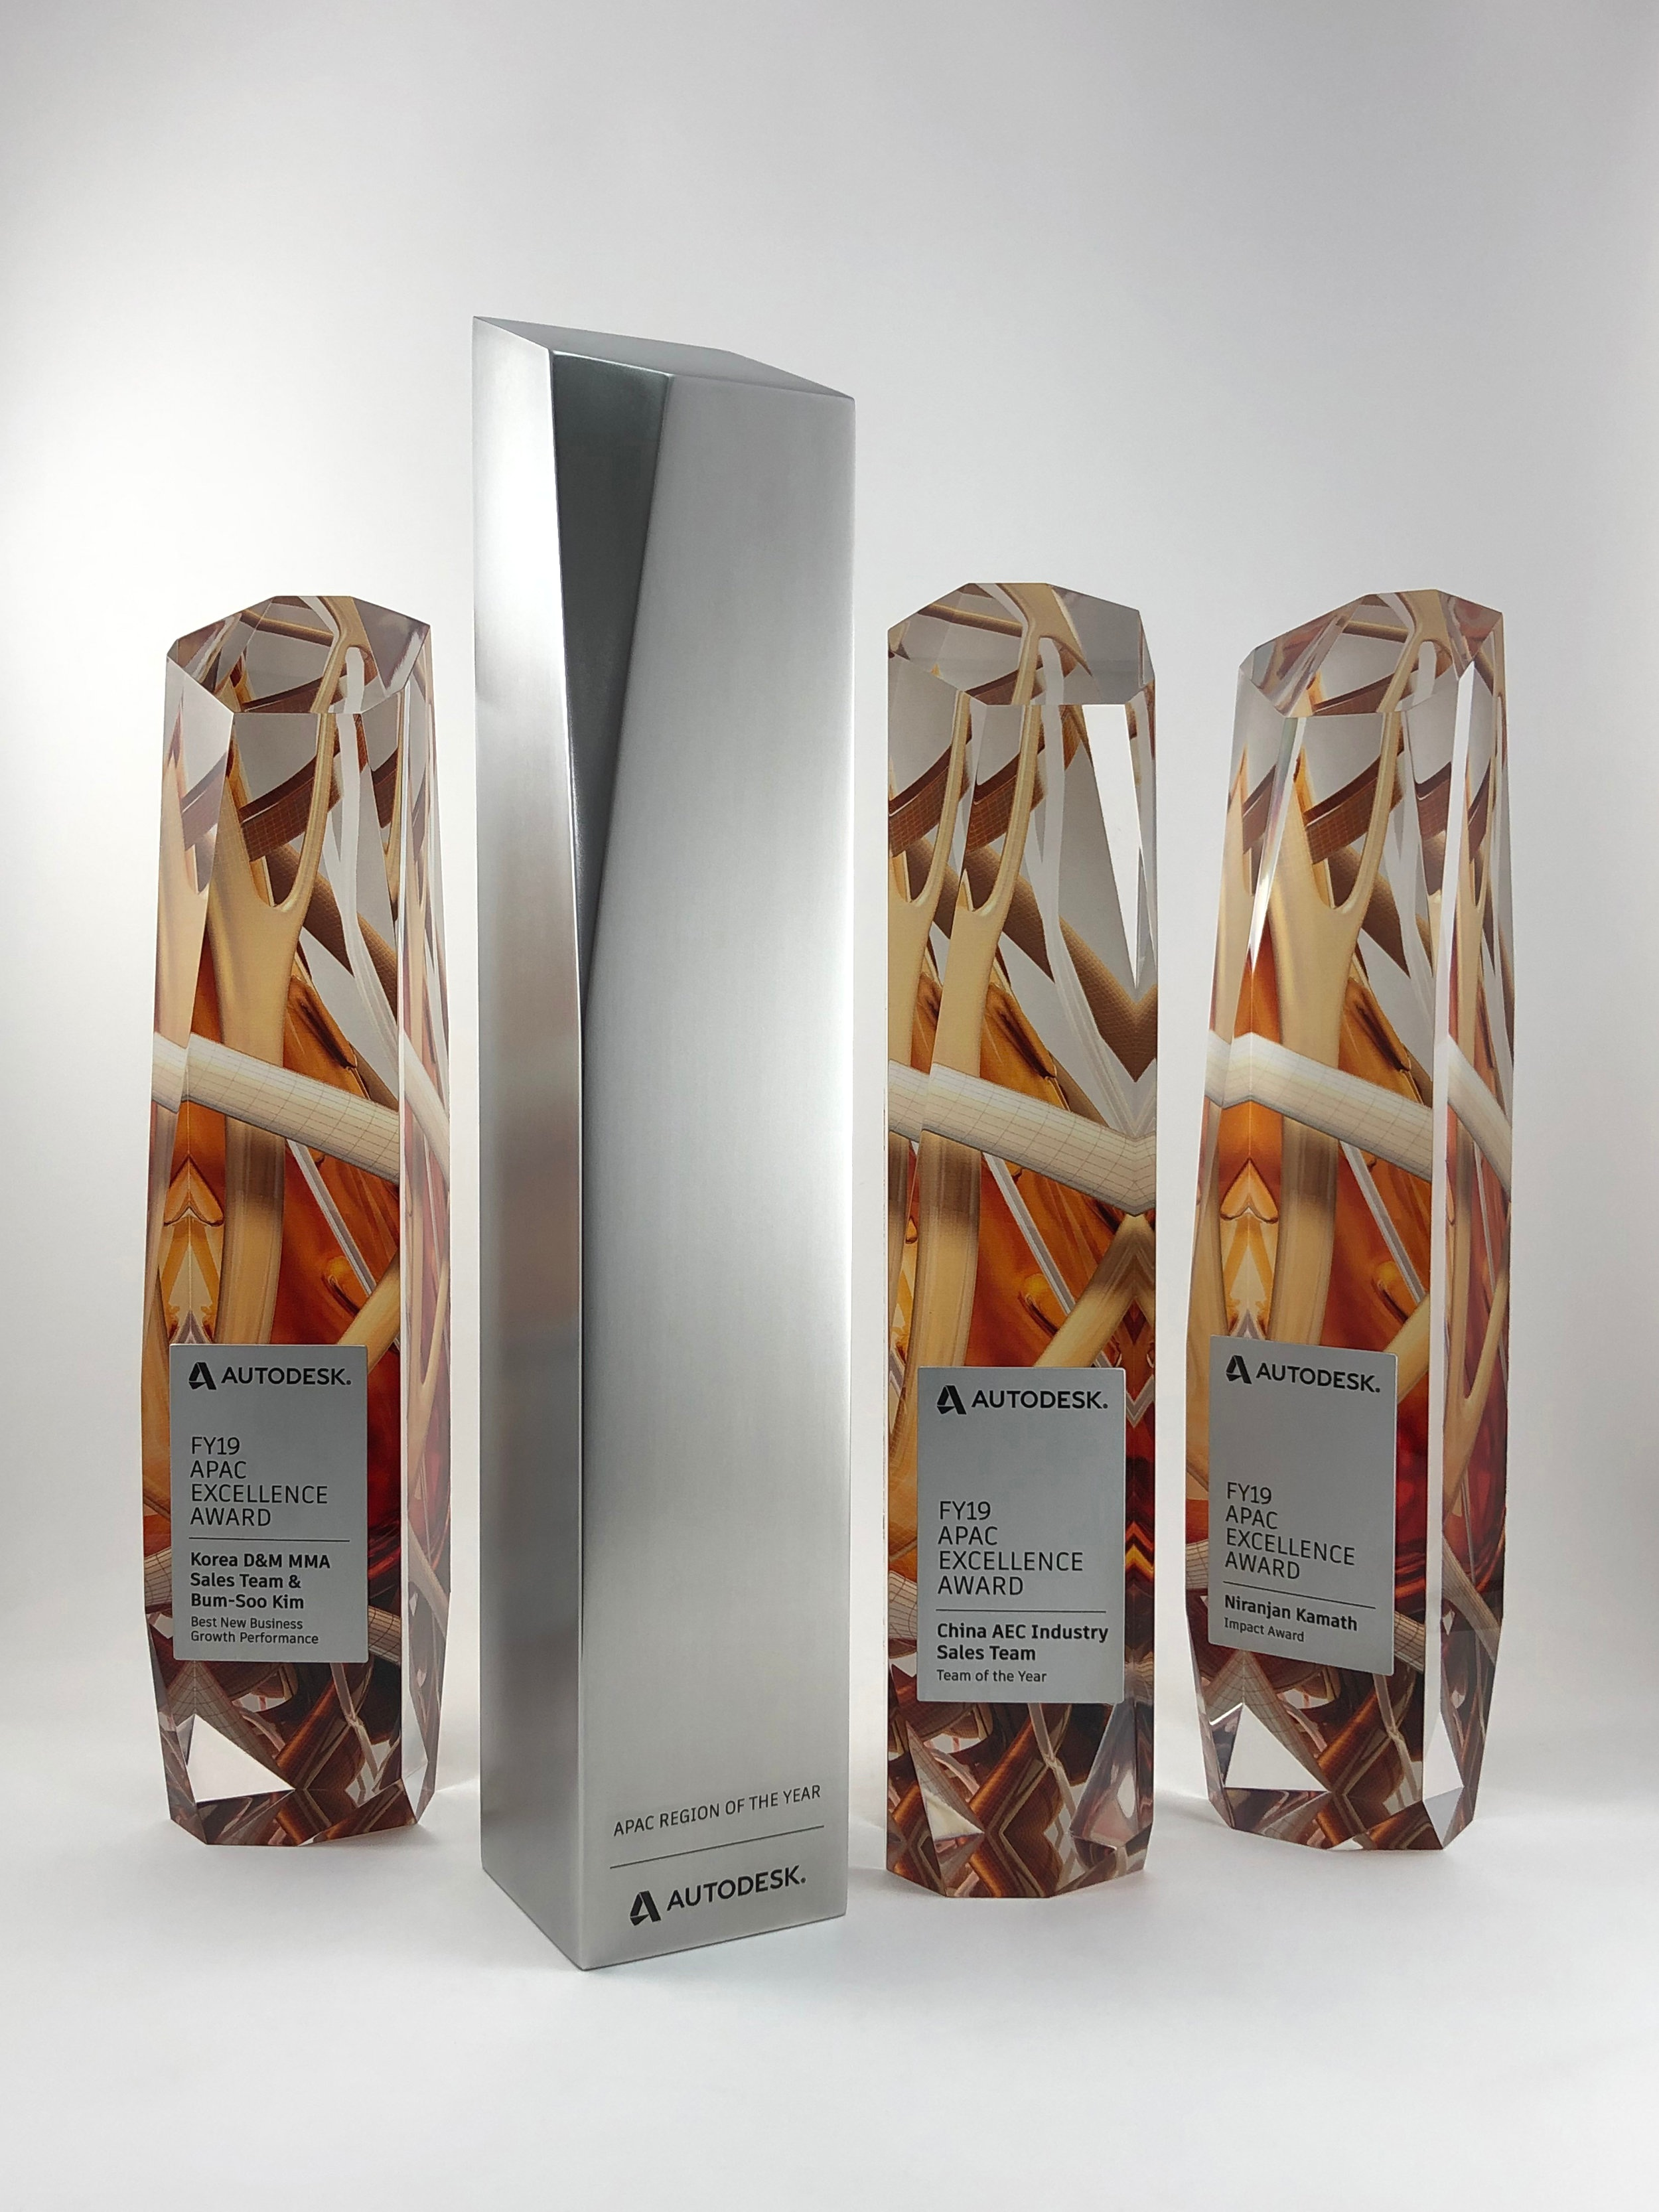 autodesk-apac-excellence-awards-acrylic-metal-graphic-art-print-trophy-02.jpg